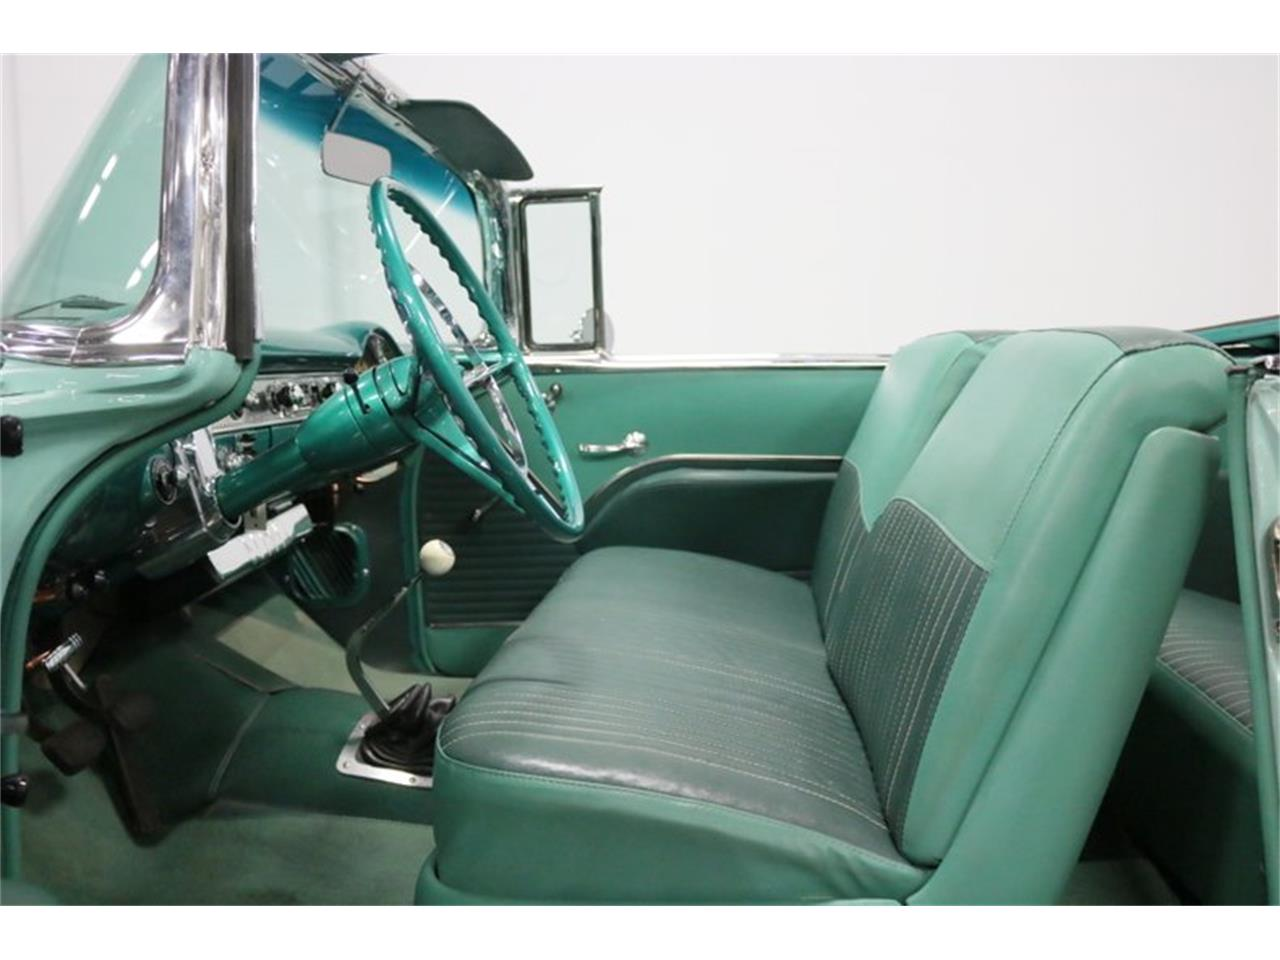 Large Picture of '55 Chevrolet Bel Air located in Texas - $76,995.00 Offered by Streetside Classics - Dallas / Fort Worth - QAW8